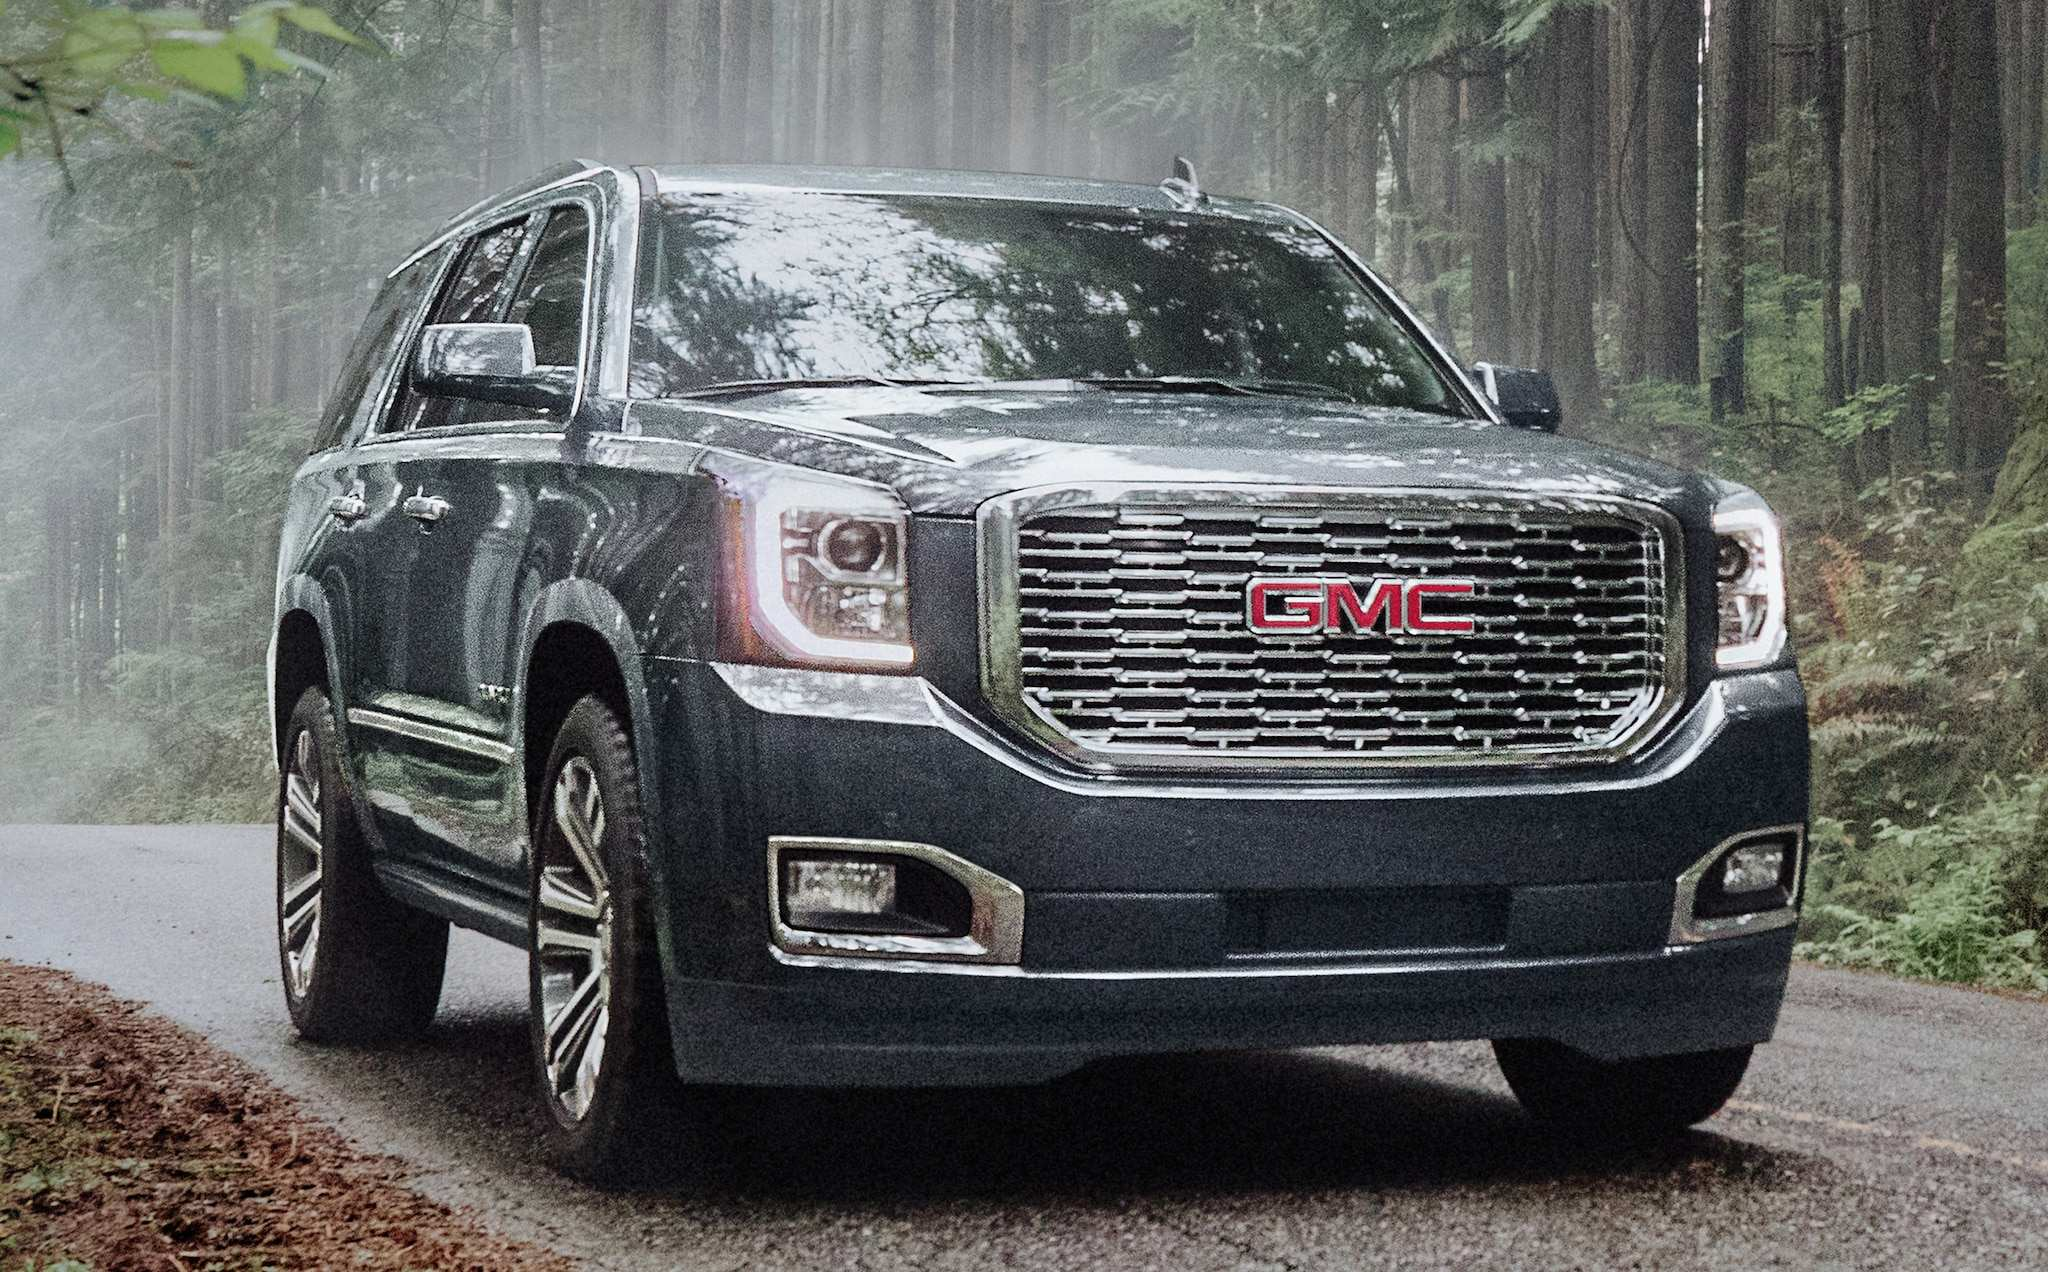 40 New What Does The 2020 Gmc Yukon Look Like Photos for What Does The 2020 Gmc Yukon Look Like